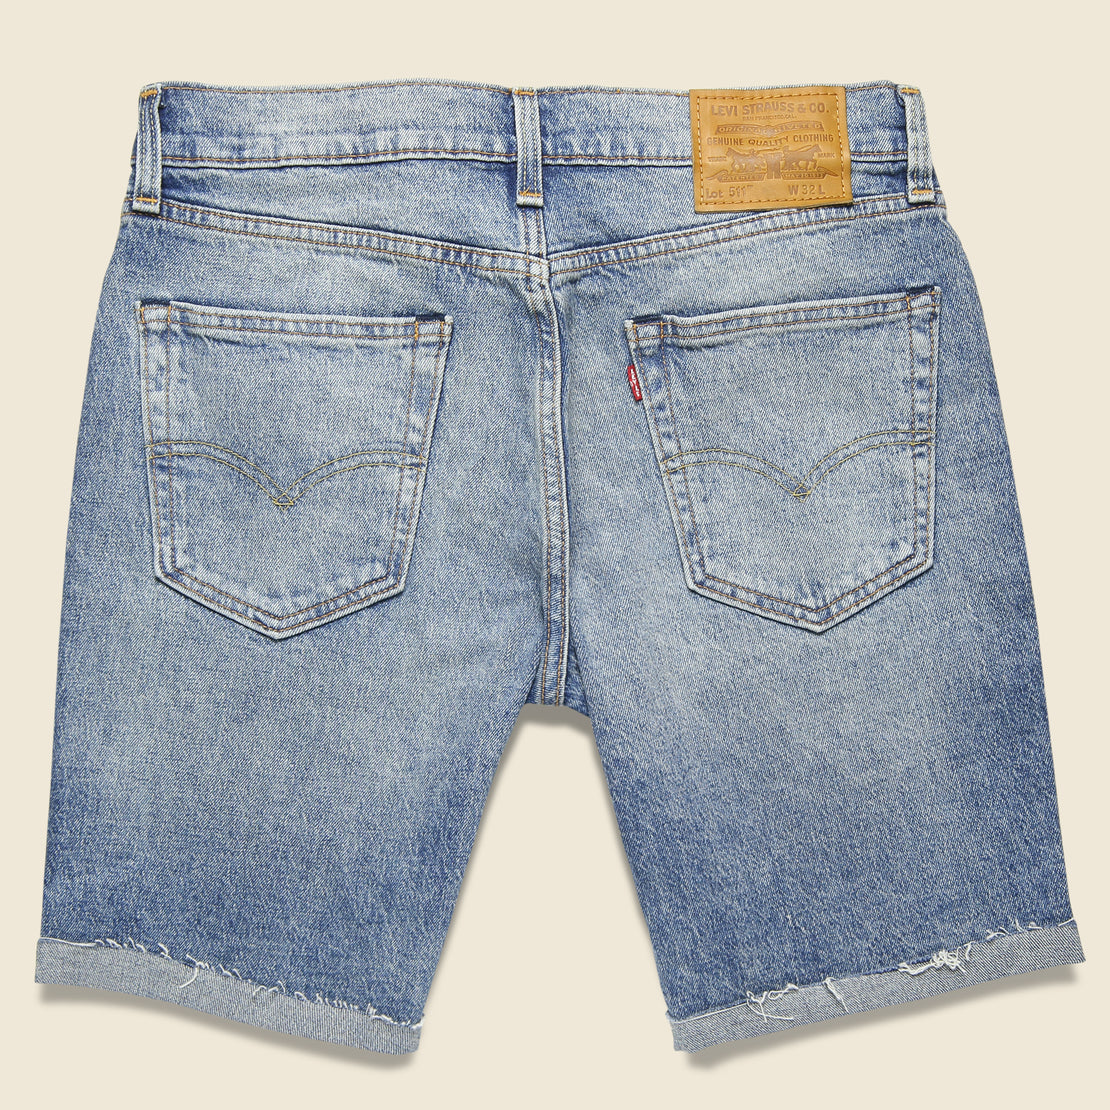 511 Cut-Off Short - Mo (Mid-Wash)